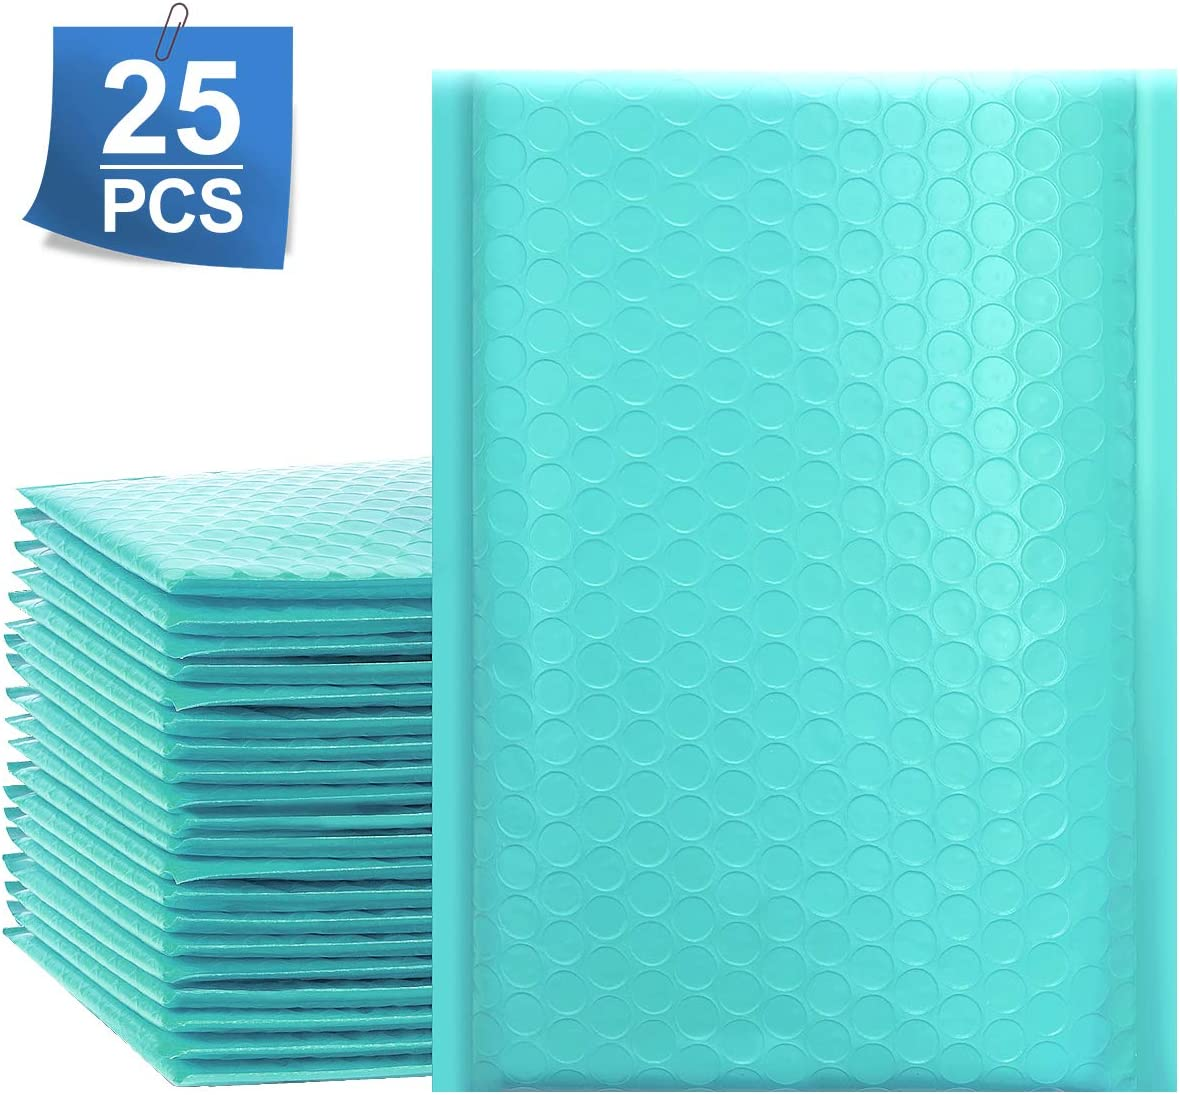 """UCGOU 6x10 Inch Teal Poly Bubble Mailers Padded Envelopes Self Seal Envelopes Bags Pack of 25 (Inside Size: 6x9"""") : Office Products"""